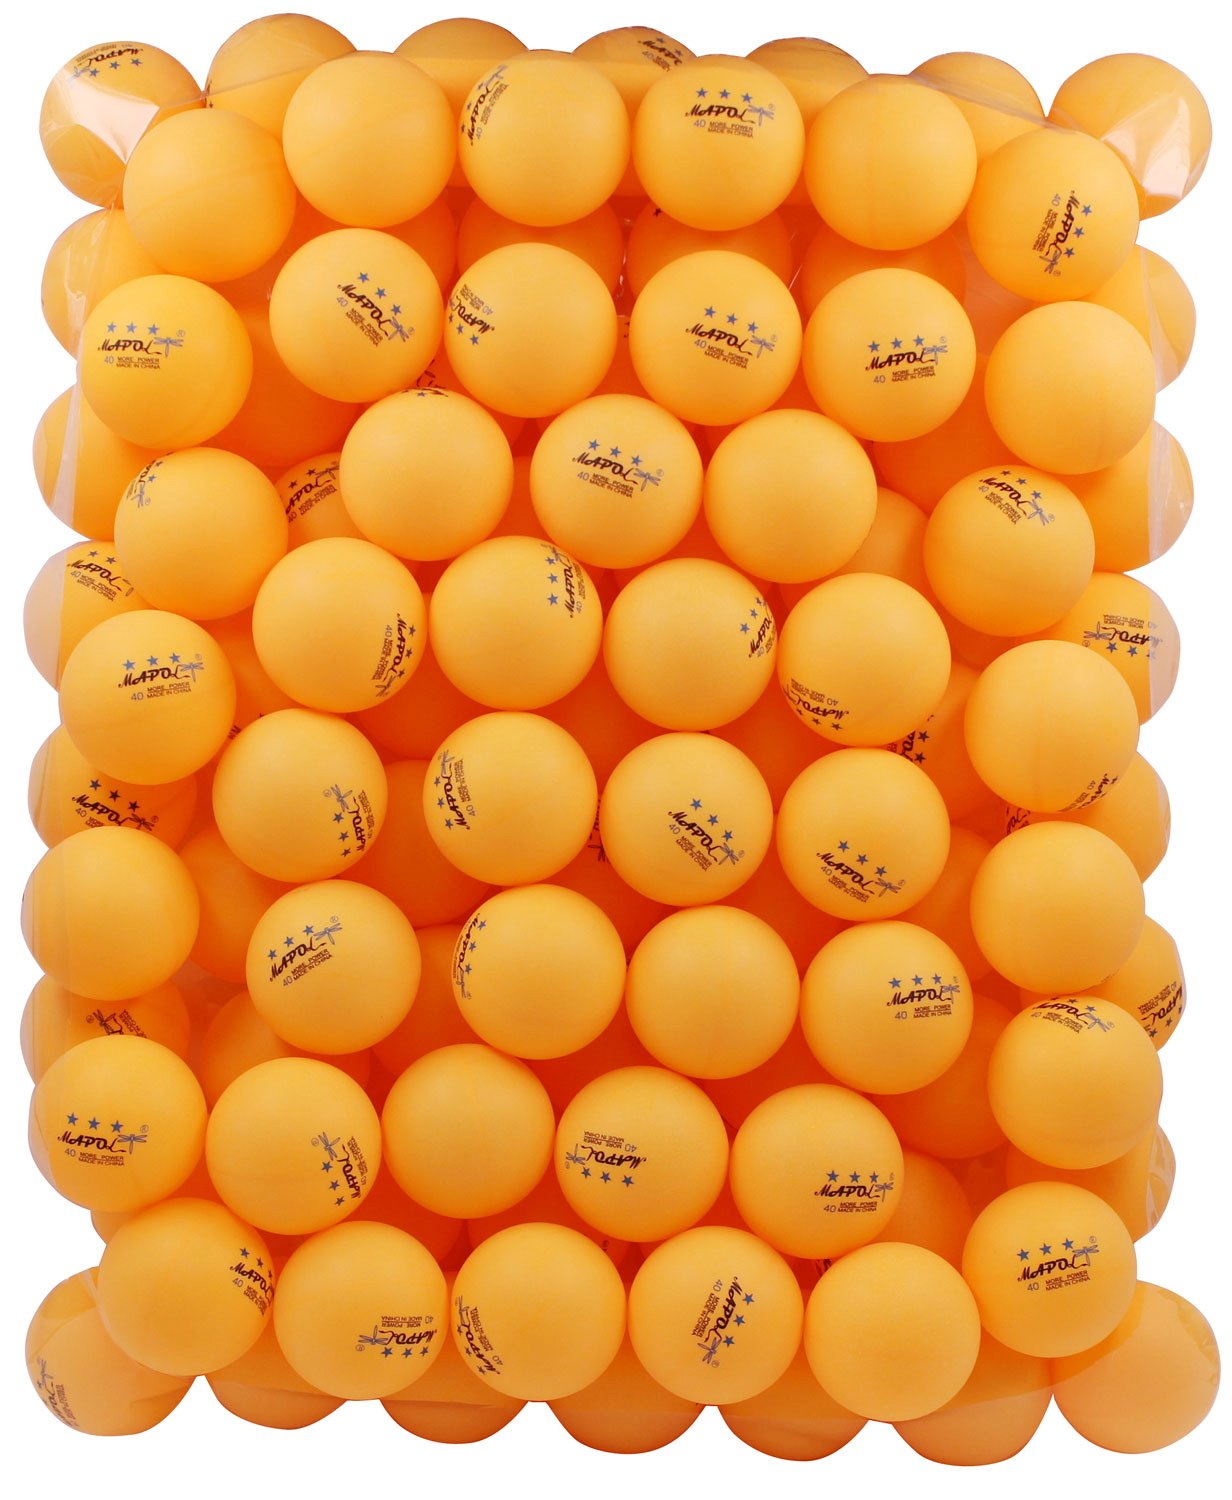 Mapol 100 orange 3 star 40mm table tennis balls advanced for 100 table tennis balls